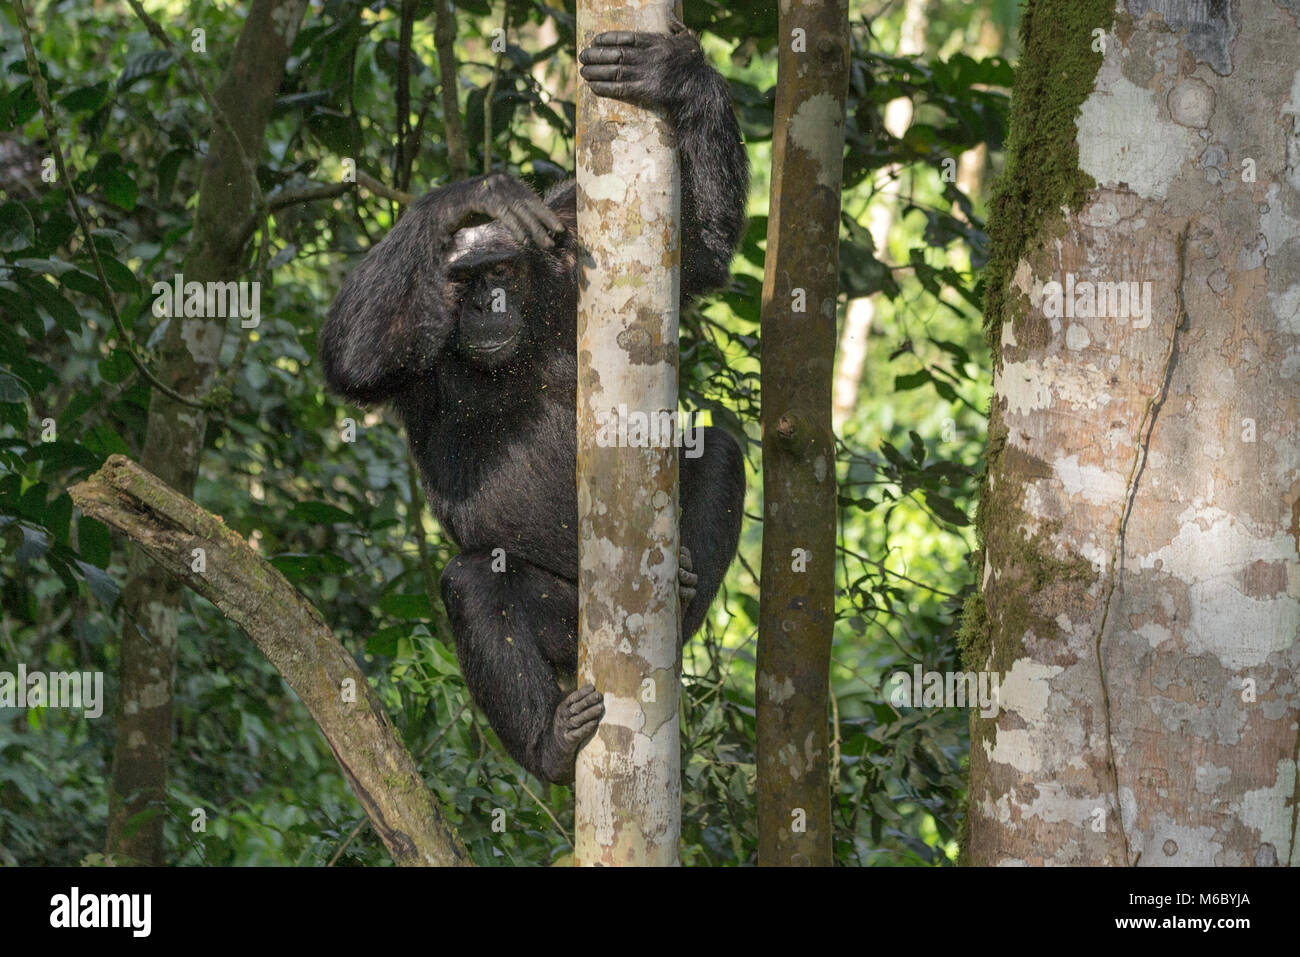 Alpha male climbing down tree Chimpanzee Kimbale Forest National Park Uganda Africa - Stock Image